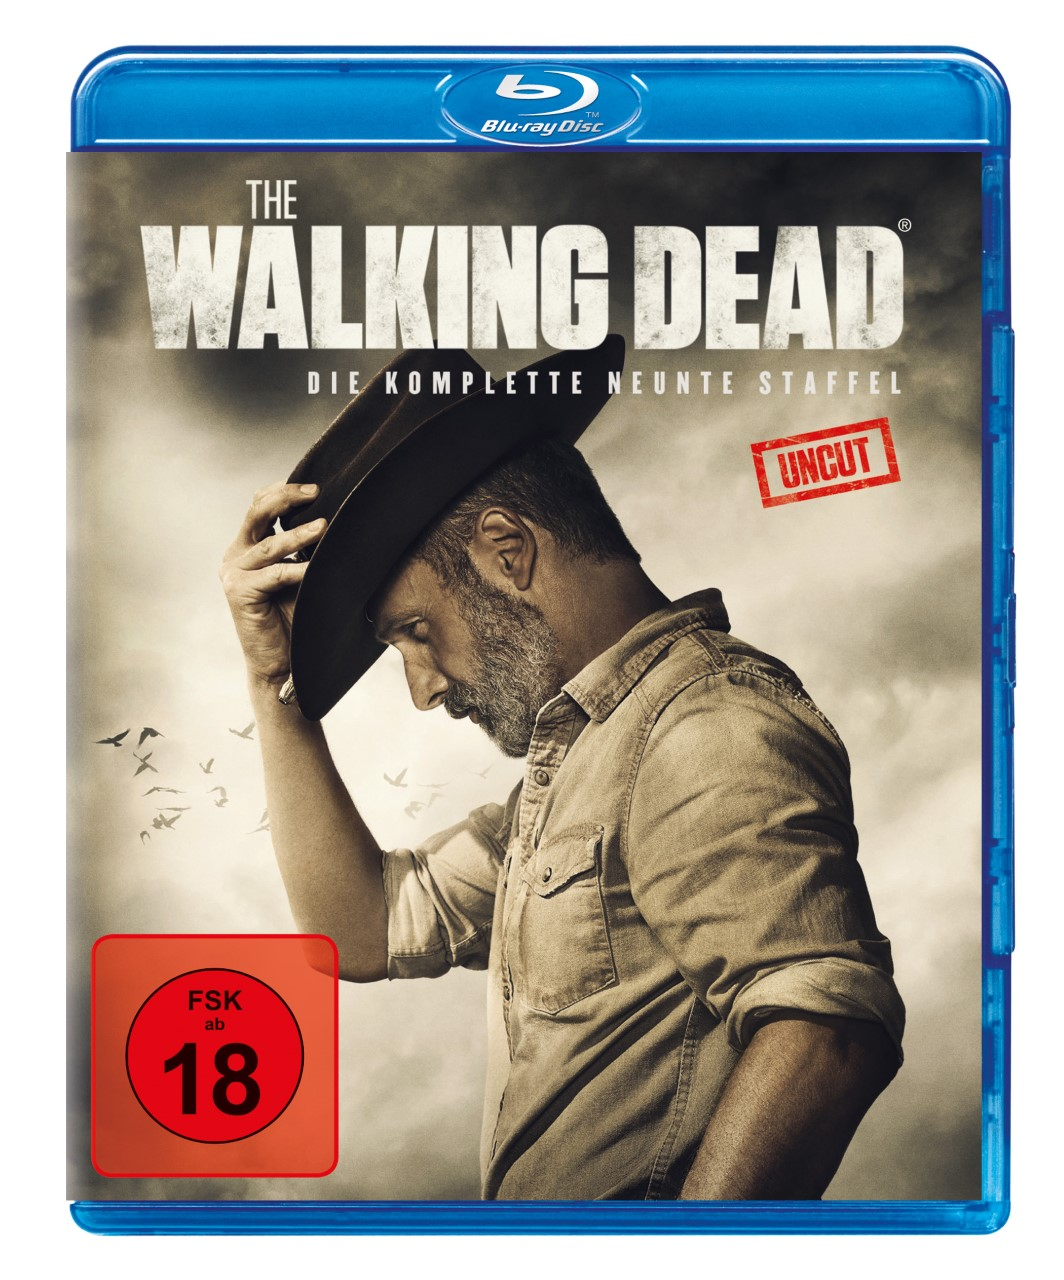 BluRay-Cover von The Walking Dead Staffel 9